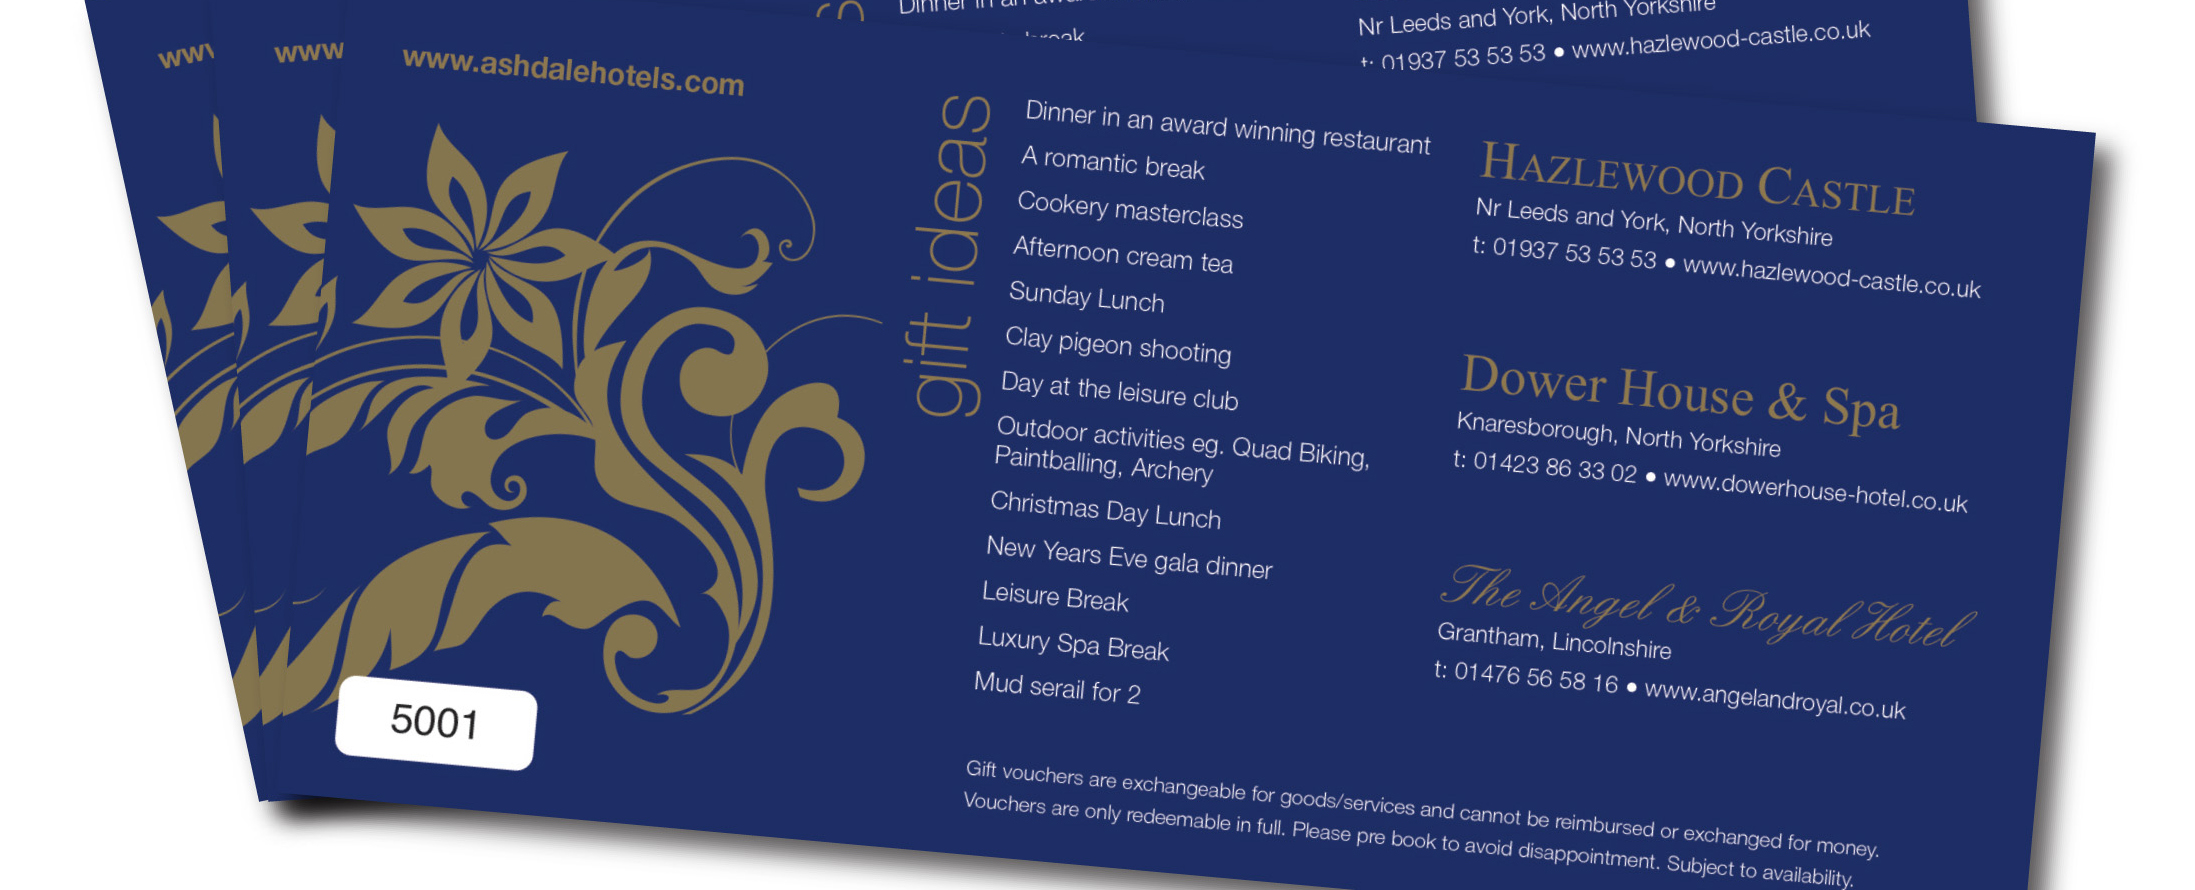 Hotel Gift Voucher Dower House Spa Buy A Gift